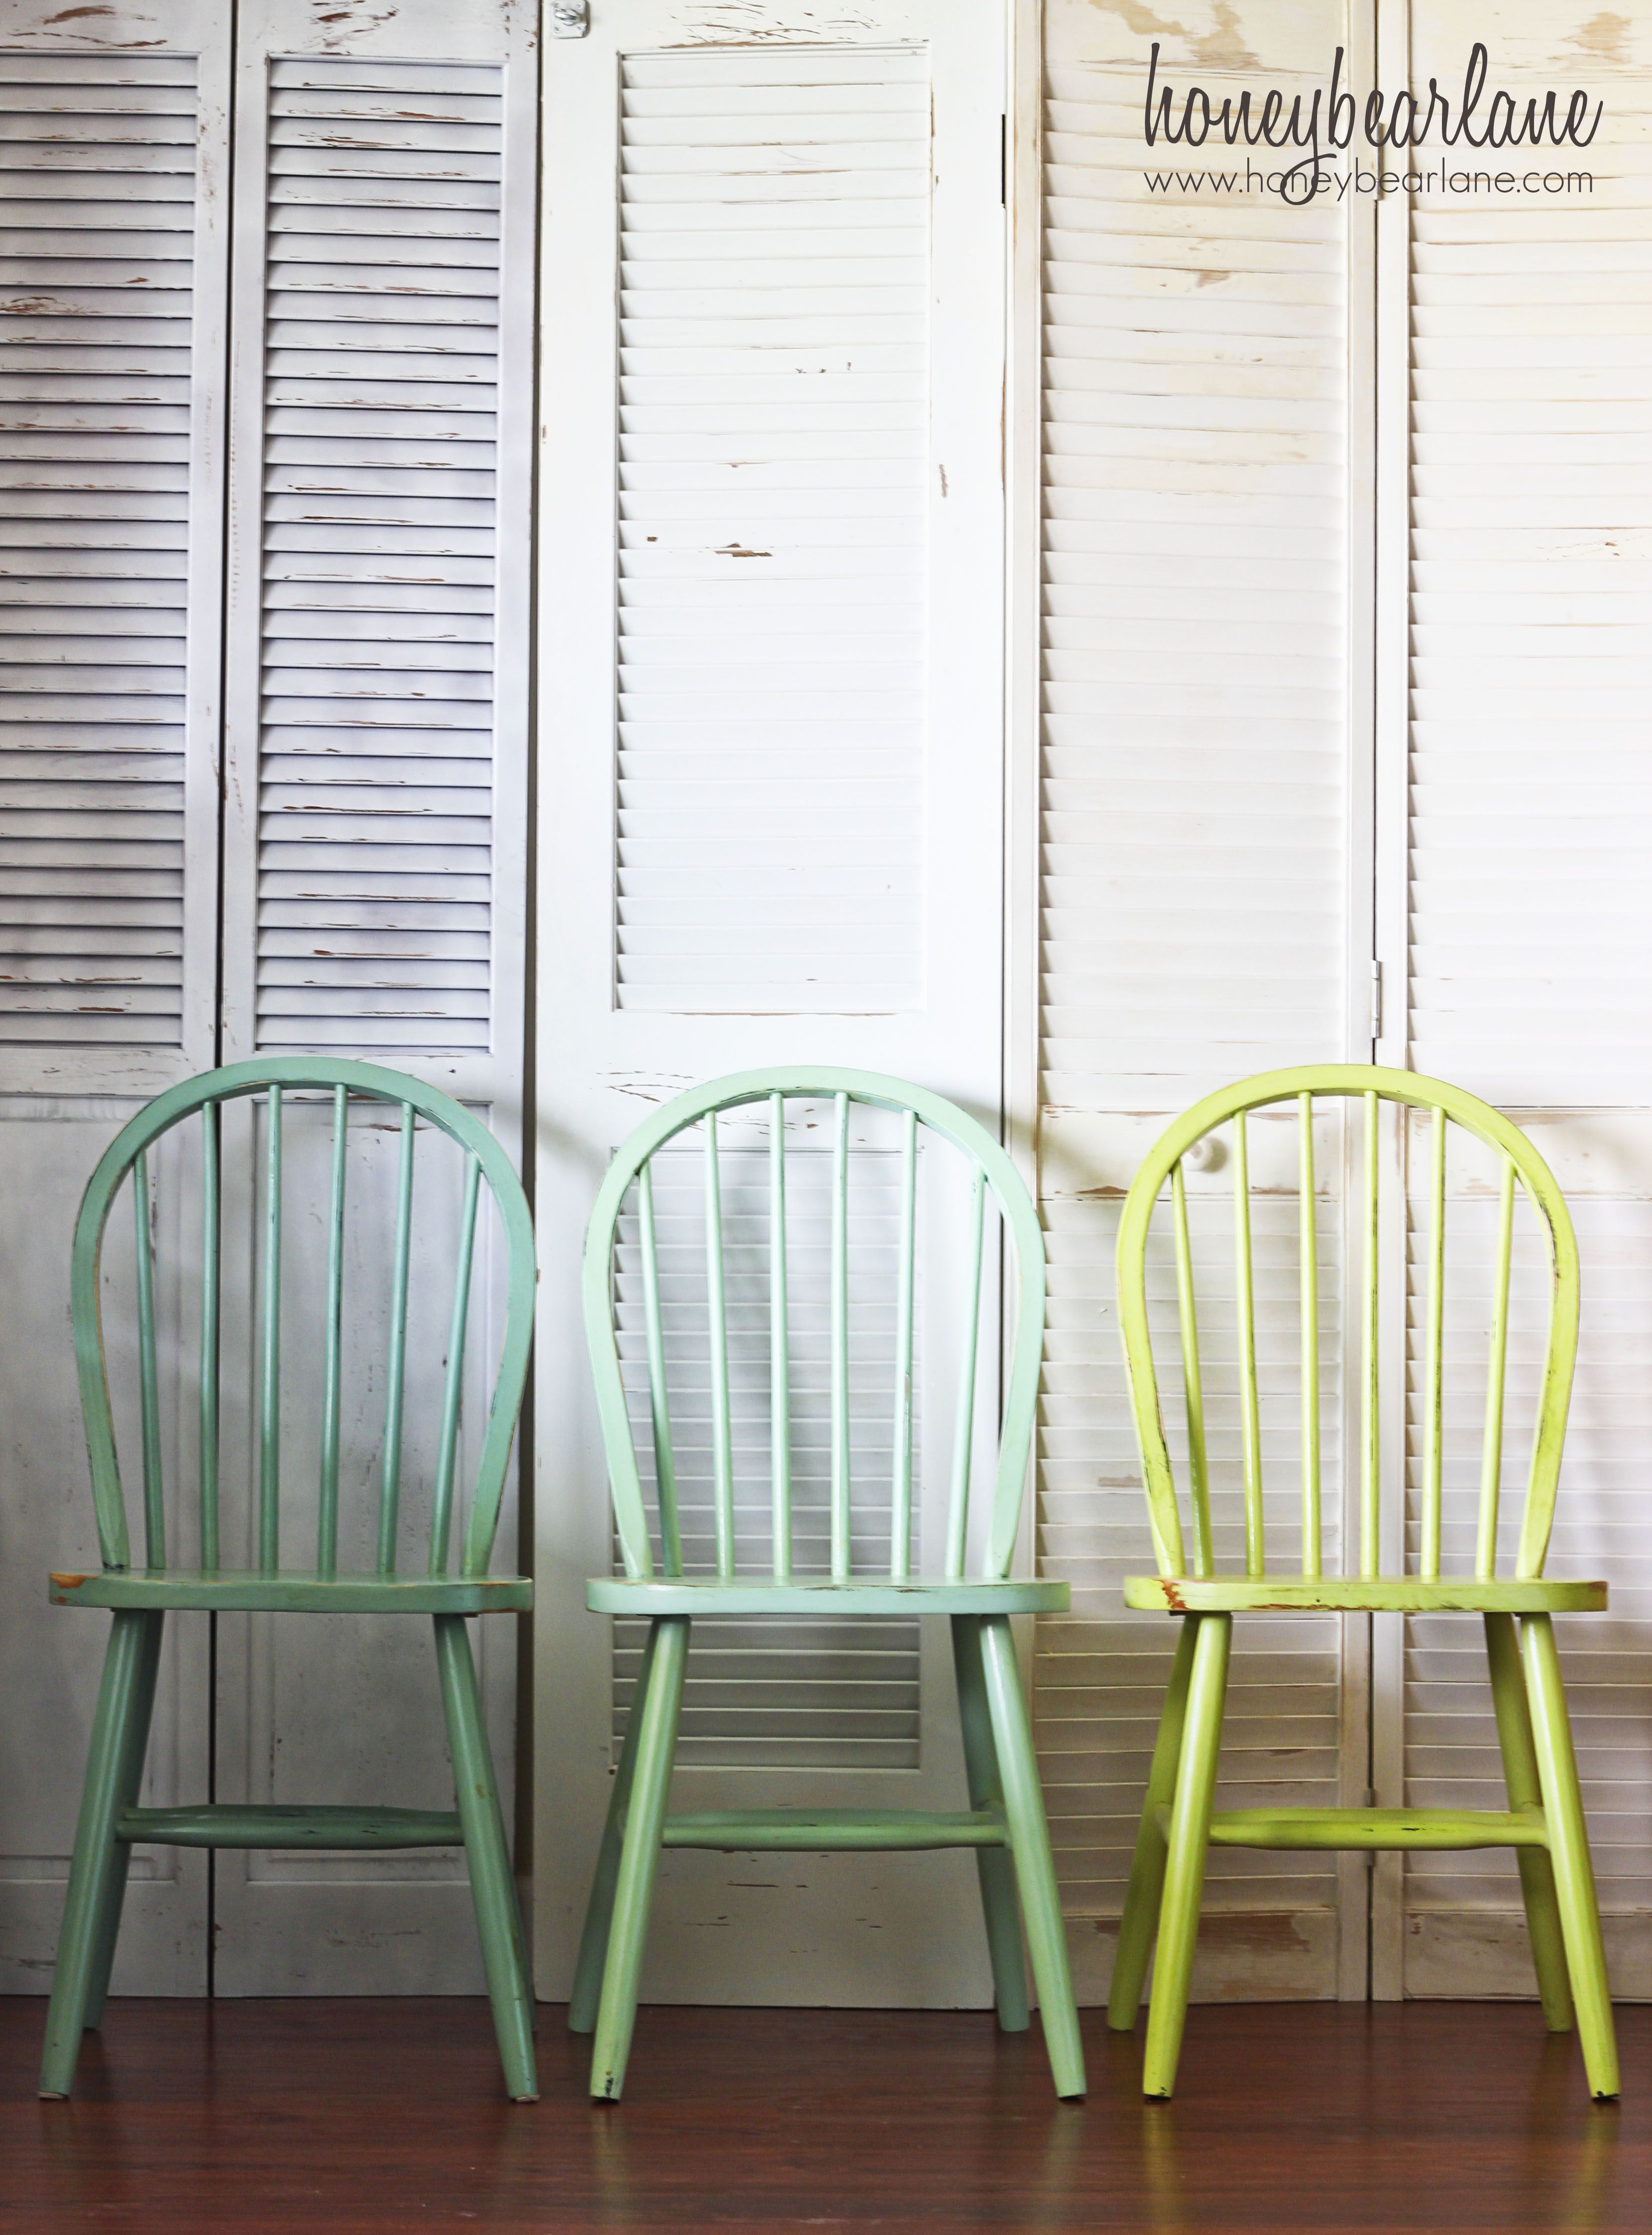 diy painted windsor chairs baby for sitting up ombre gf milk paint inspiration board chair if i ever decide to redo our current kitchen would love do this